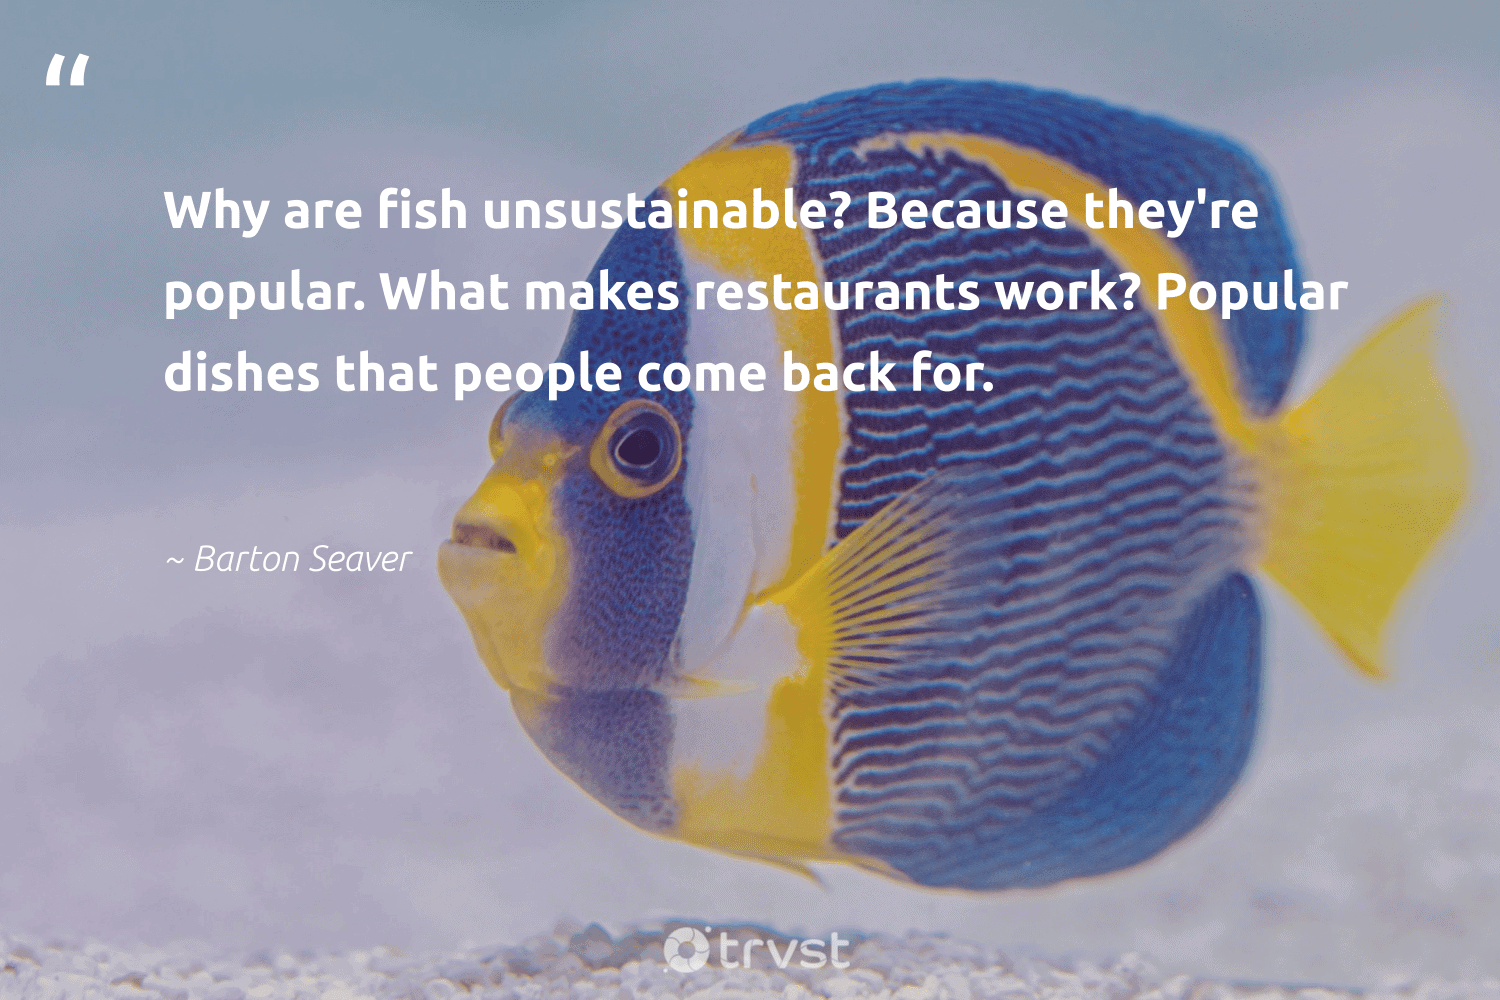 """""""Why are fish unsustainable? Because they're popular. What makes restaurants work? Popular dishes that people come back for.""""  - Barton Seaver #trvst #quotes #fish #conservation #ecoconscious #protectnature #takeaction #savetheoceans #impact #aquaticlife #changetheworld #amazingworld"""